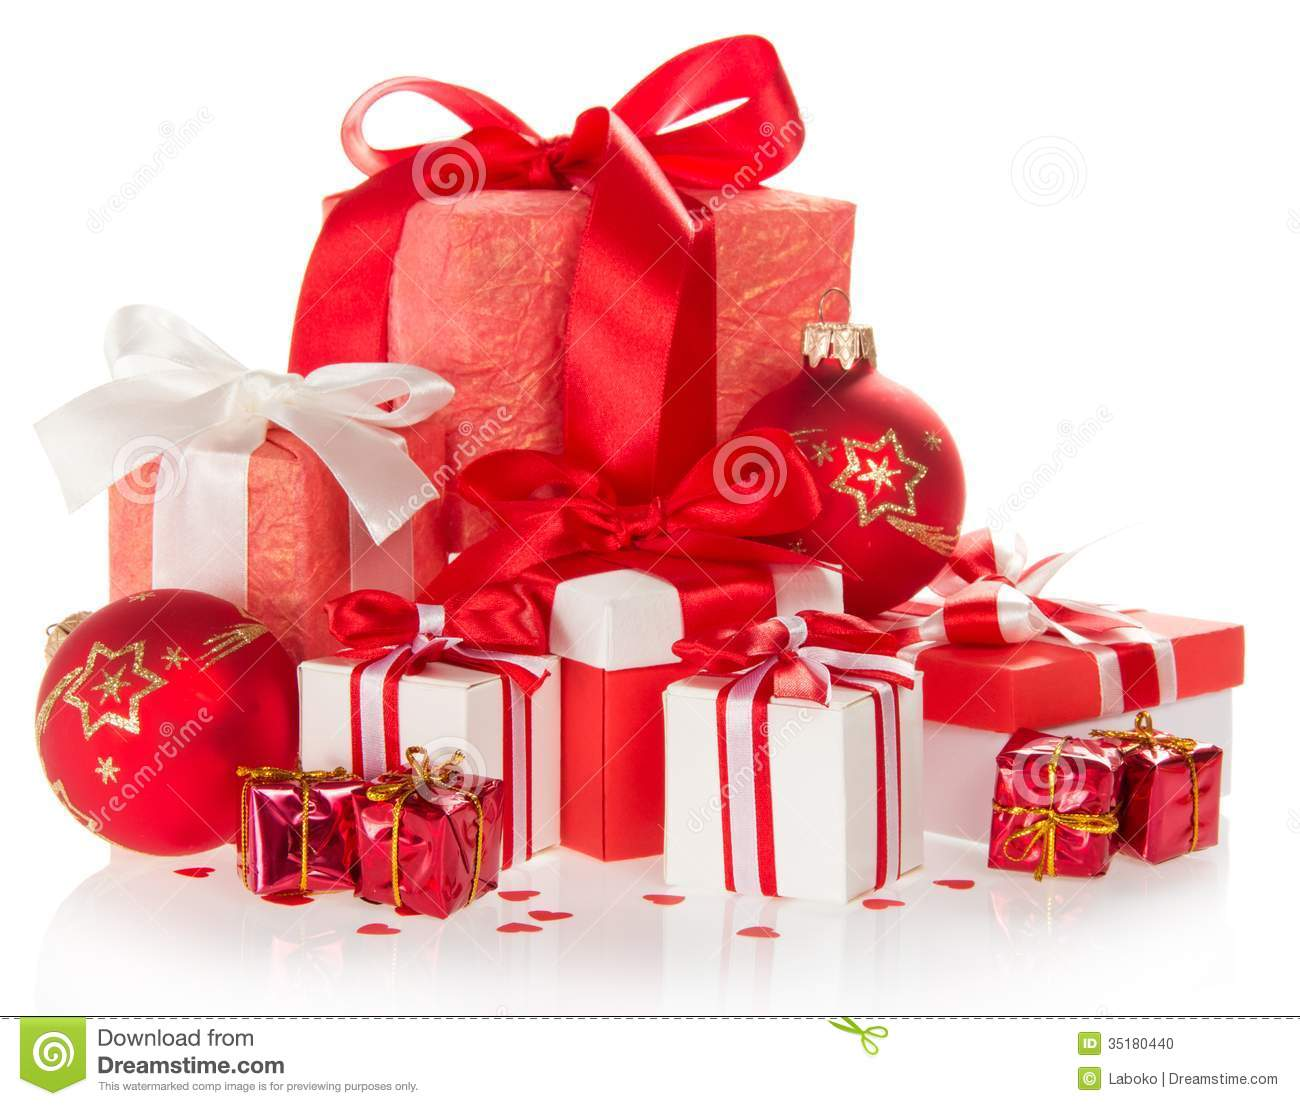 Presents Toys Christmas : Christmas gifts and toys stock photo image of composition